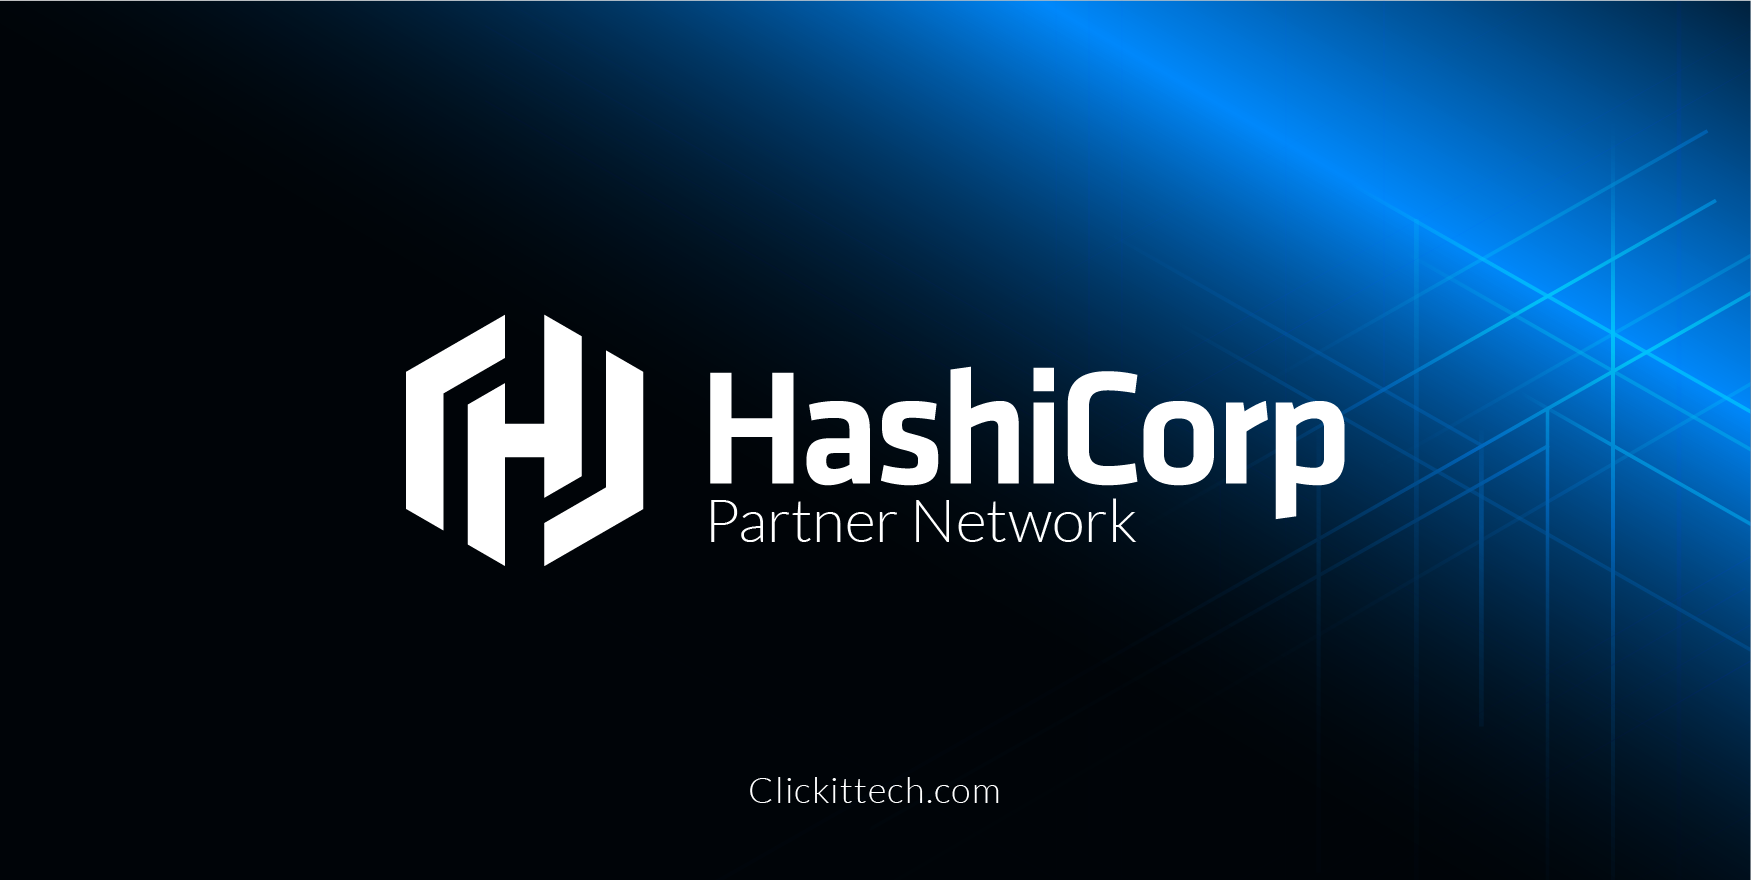 Hashicorp partnership